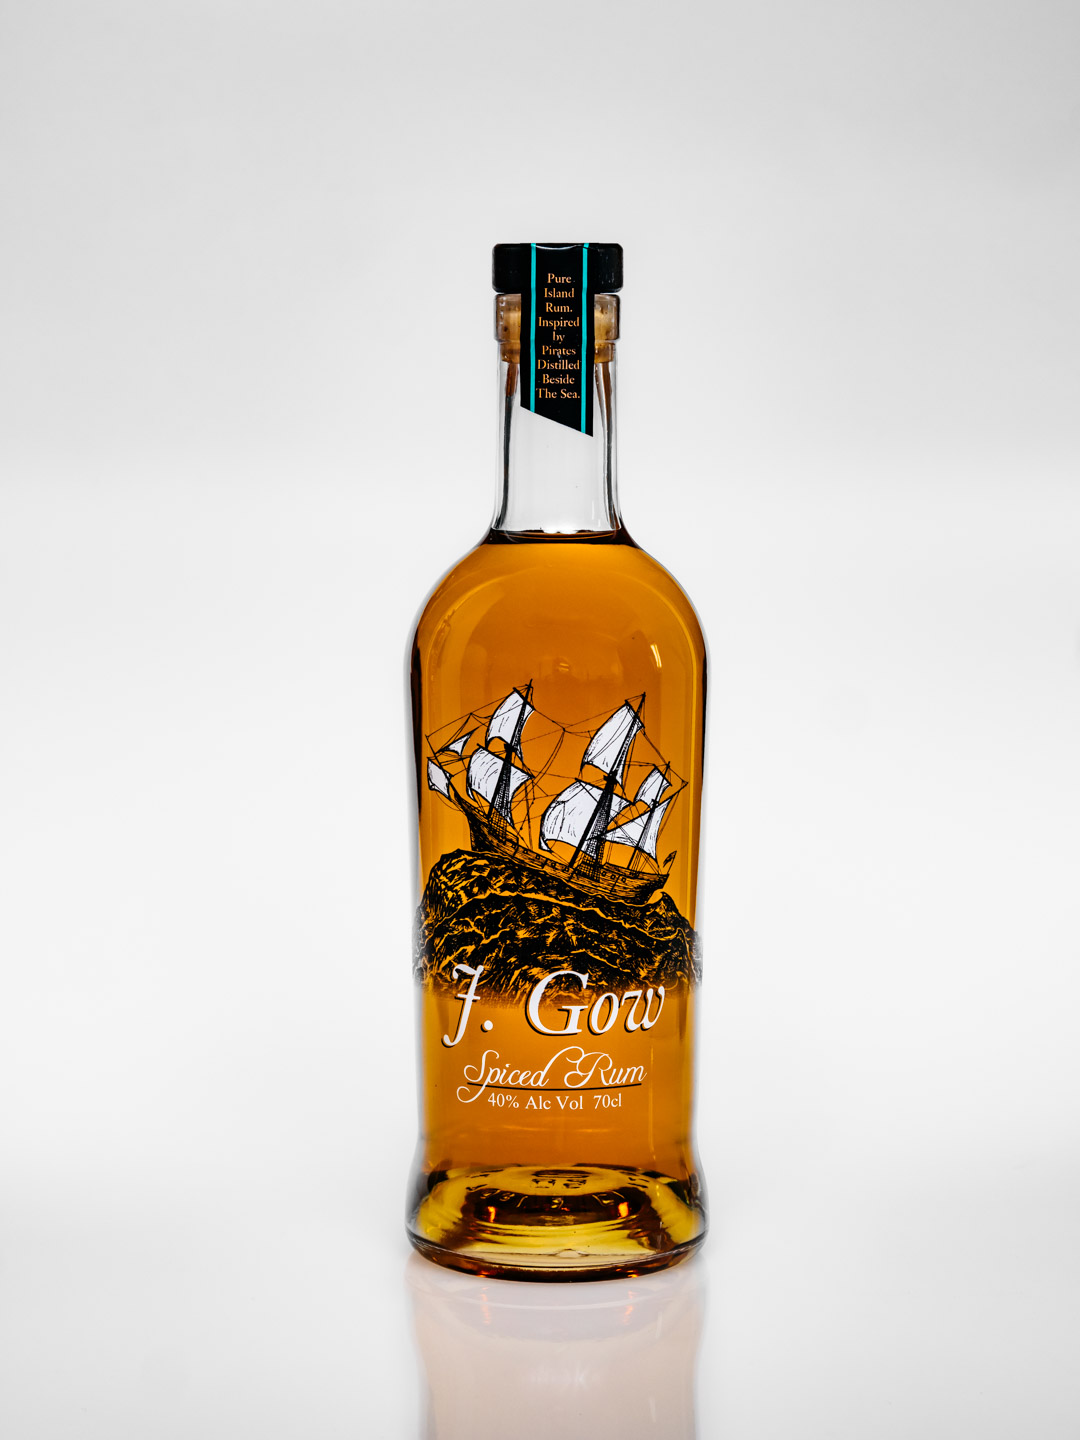 J. Gow spiced rum